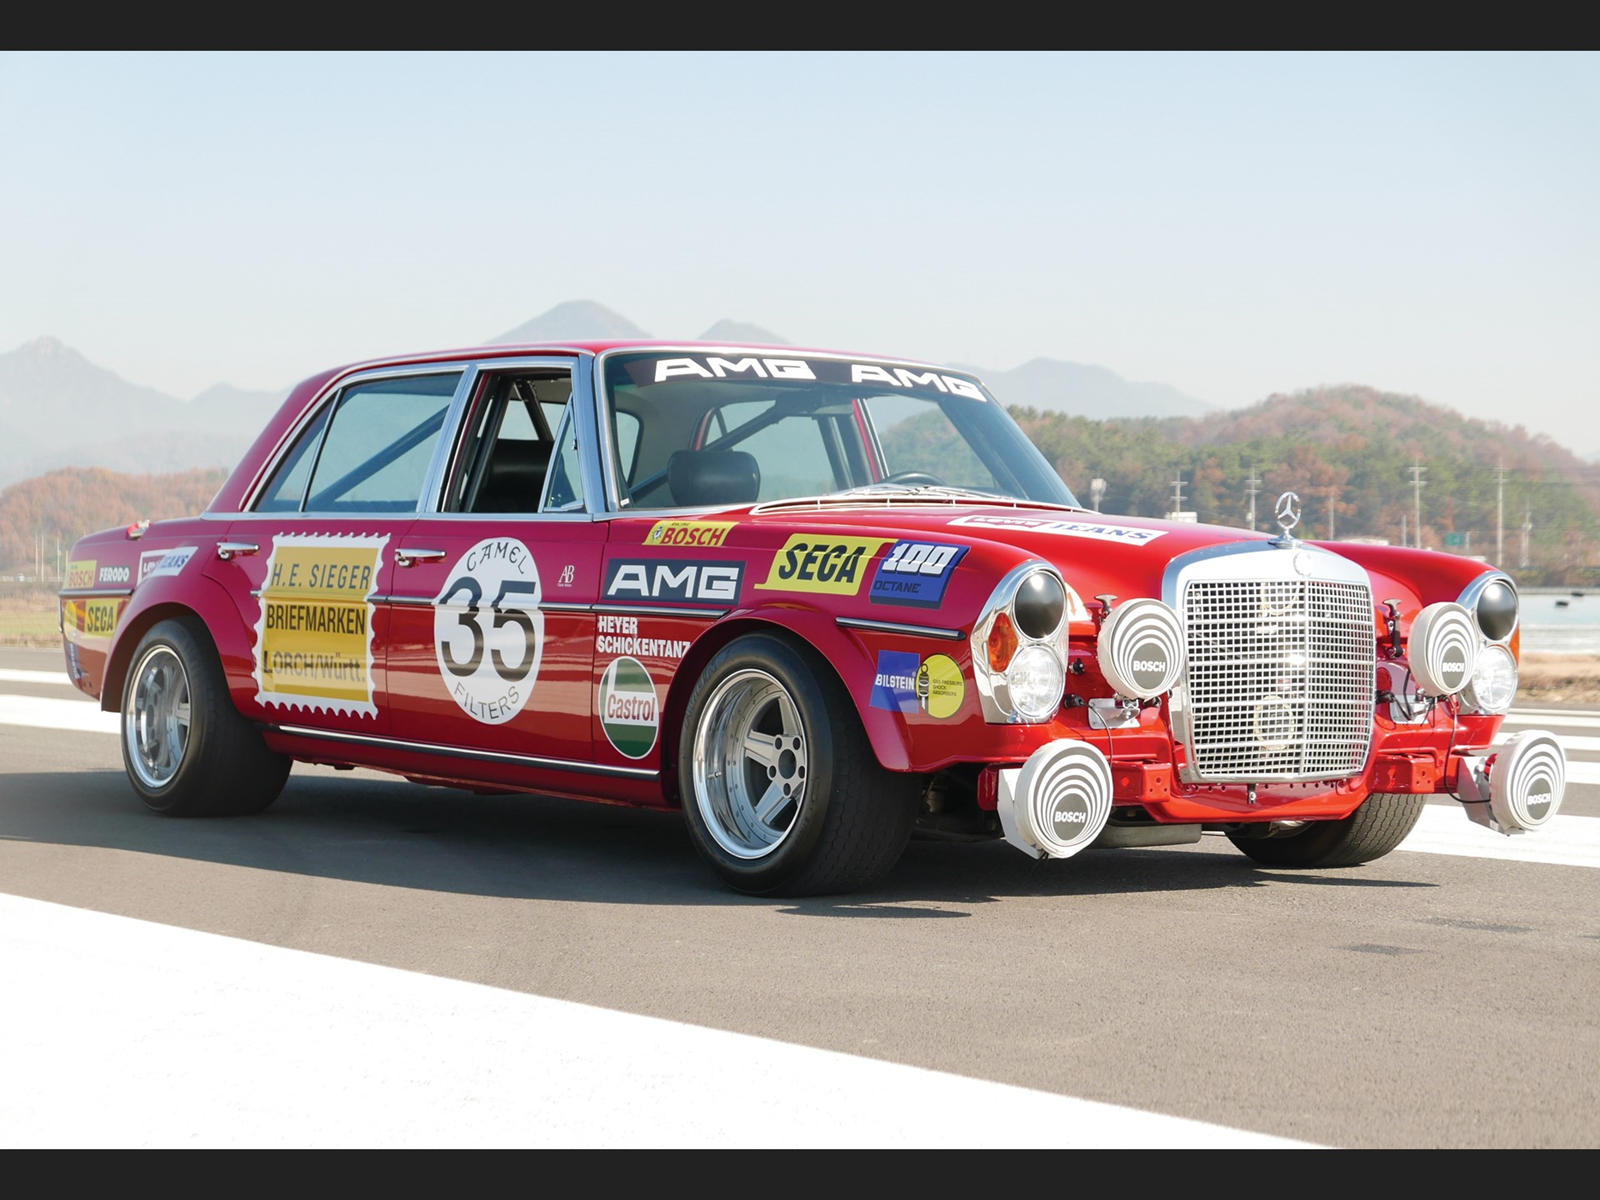 Buy A Replica Of The Greatest AMG Car Ever Made - CarBuzz